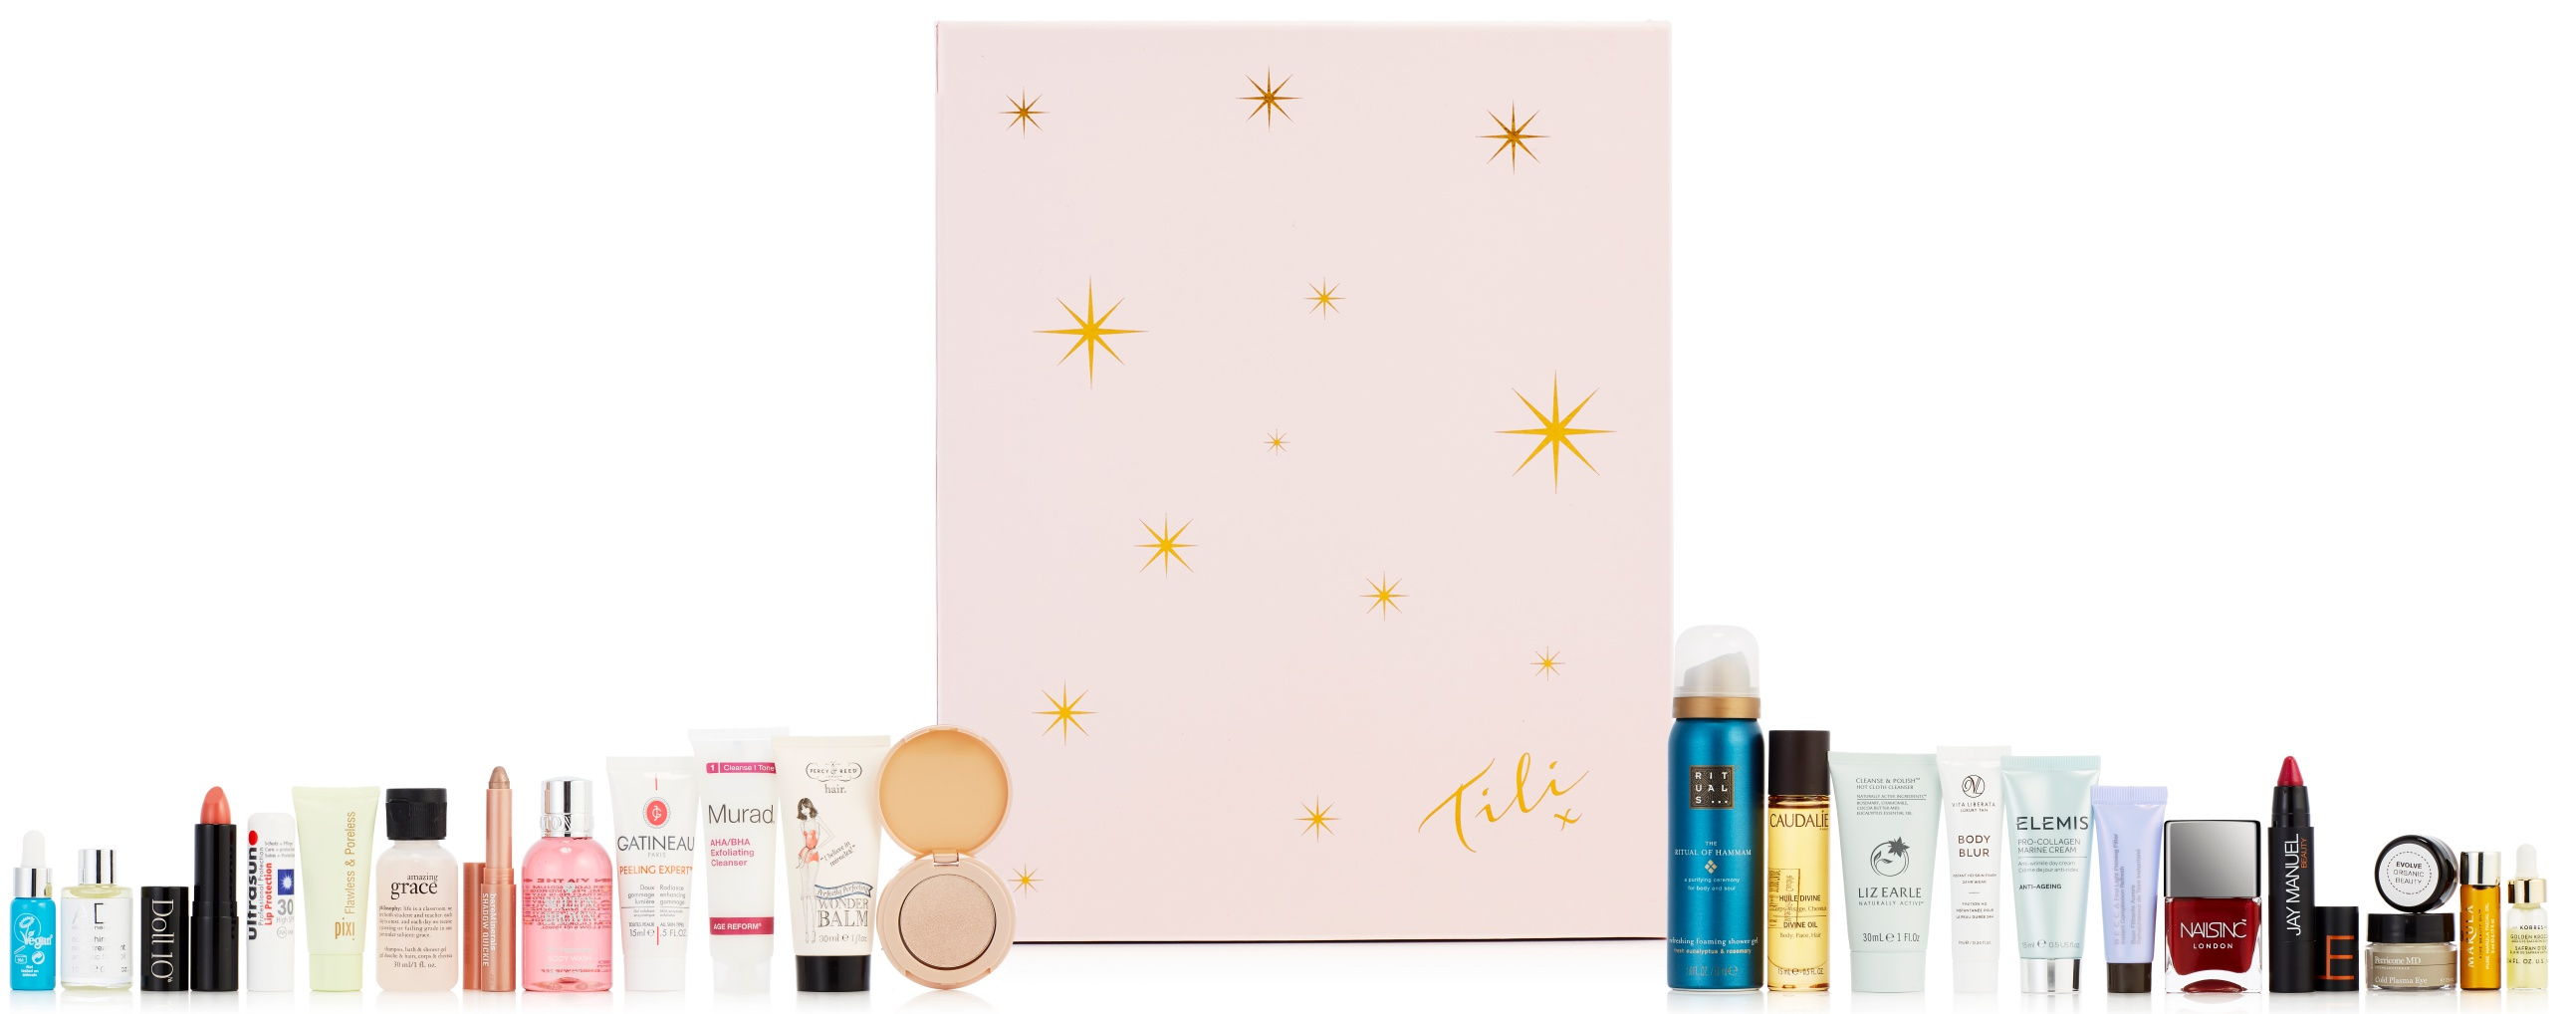 QVC TILI Advent Calendar 2017